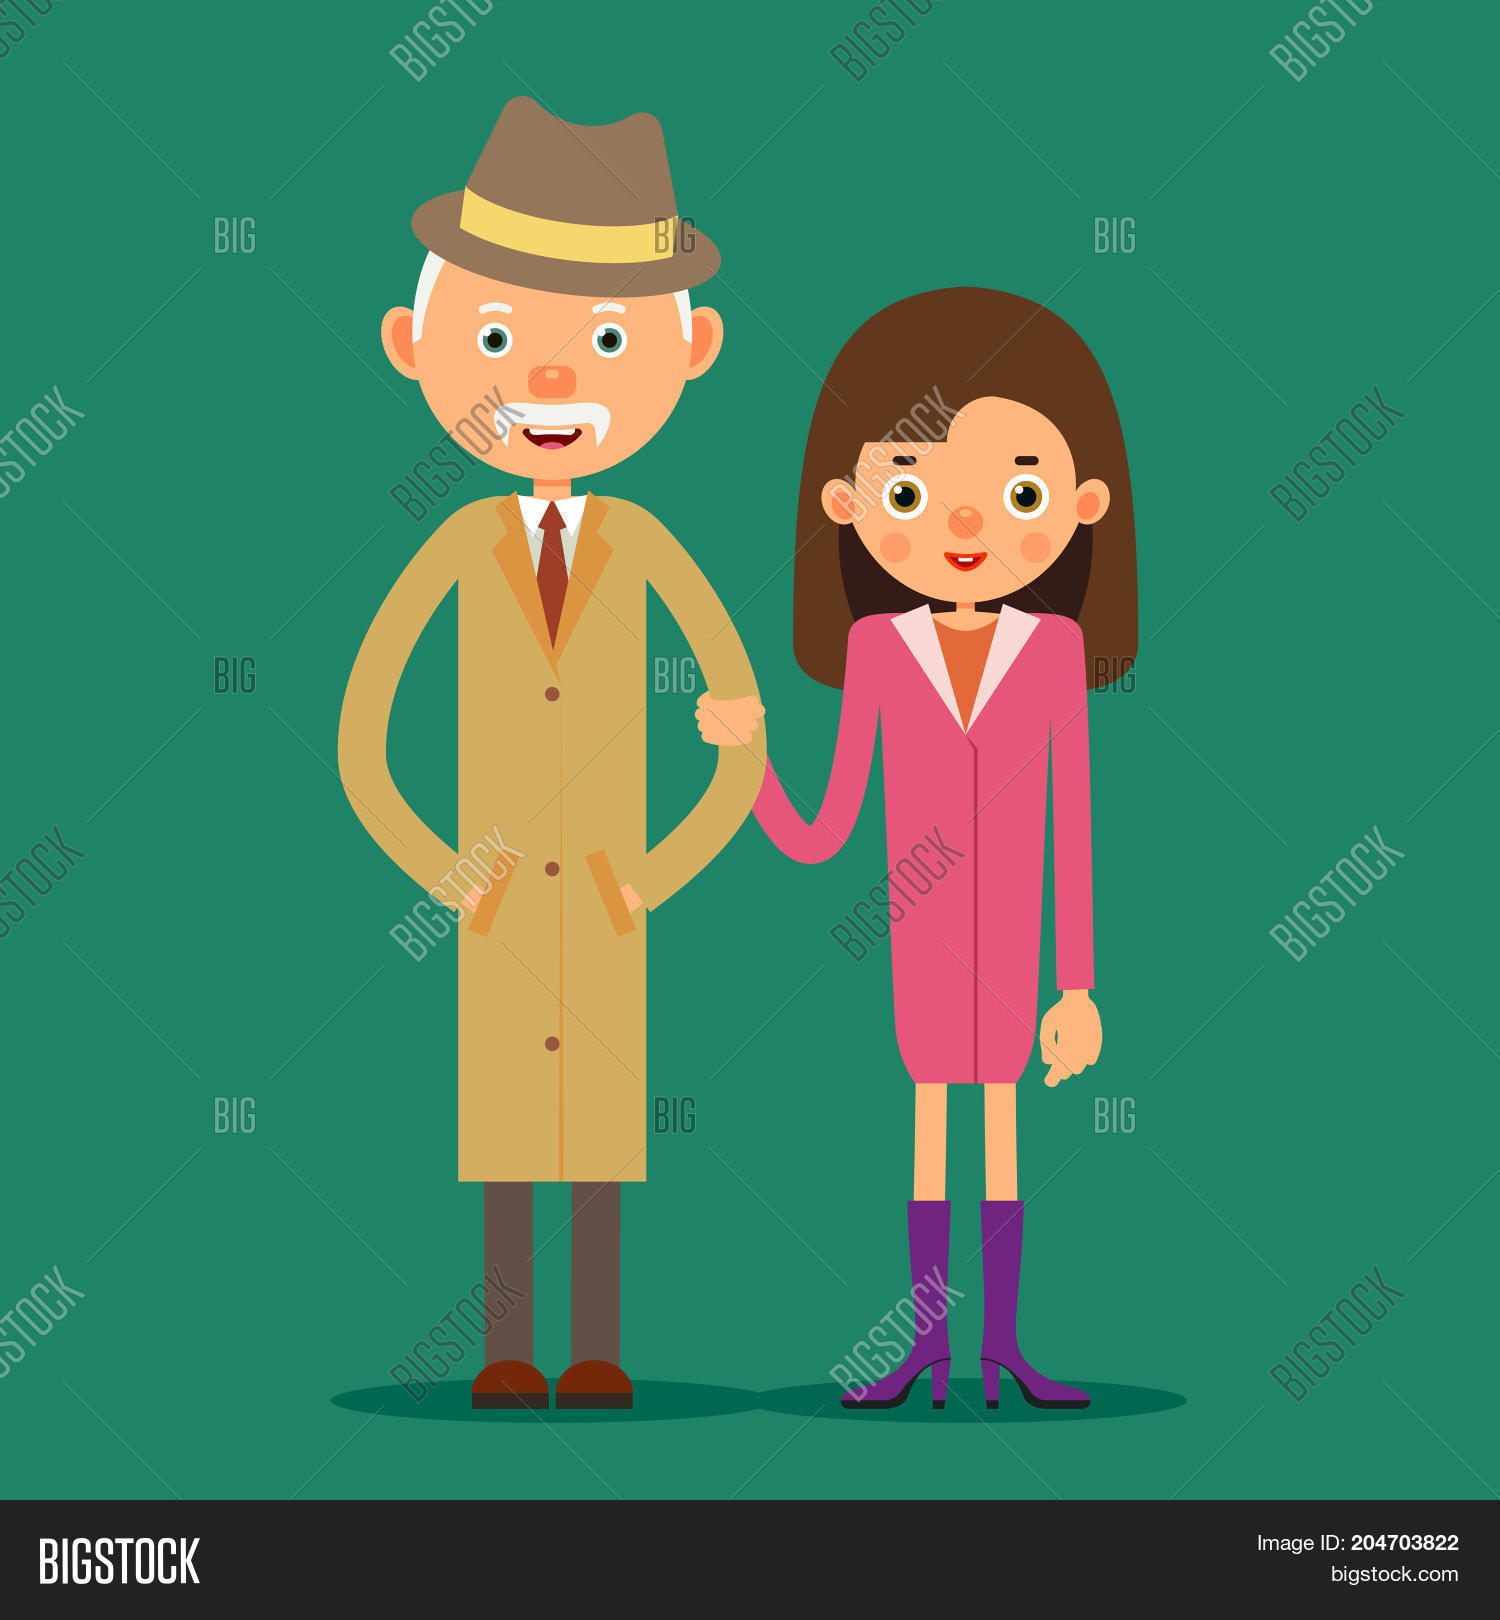 Old Man Young Girl Image Photo Free Trial Bigstock